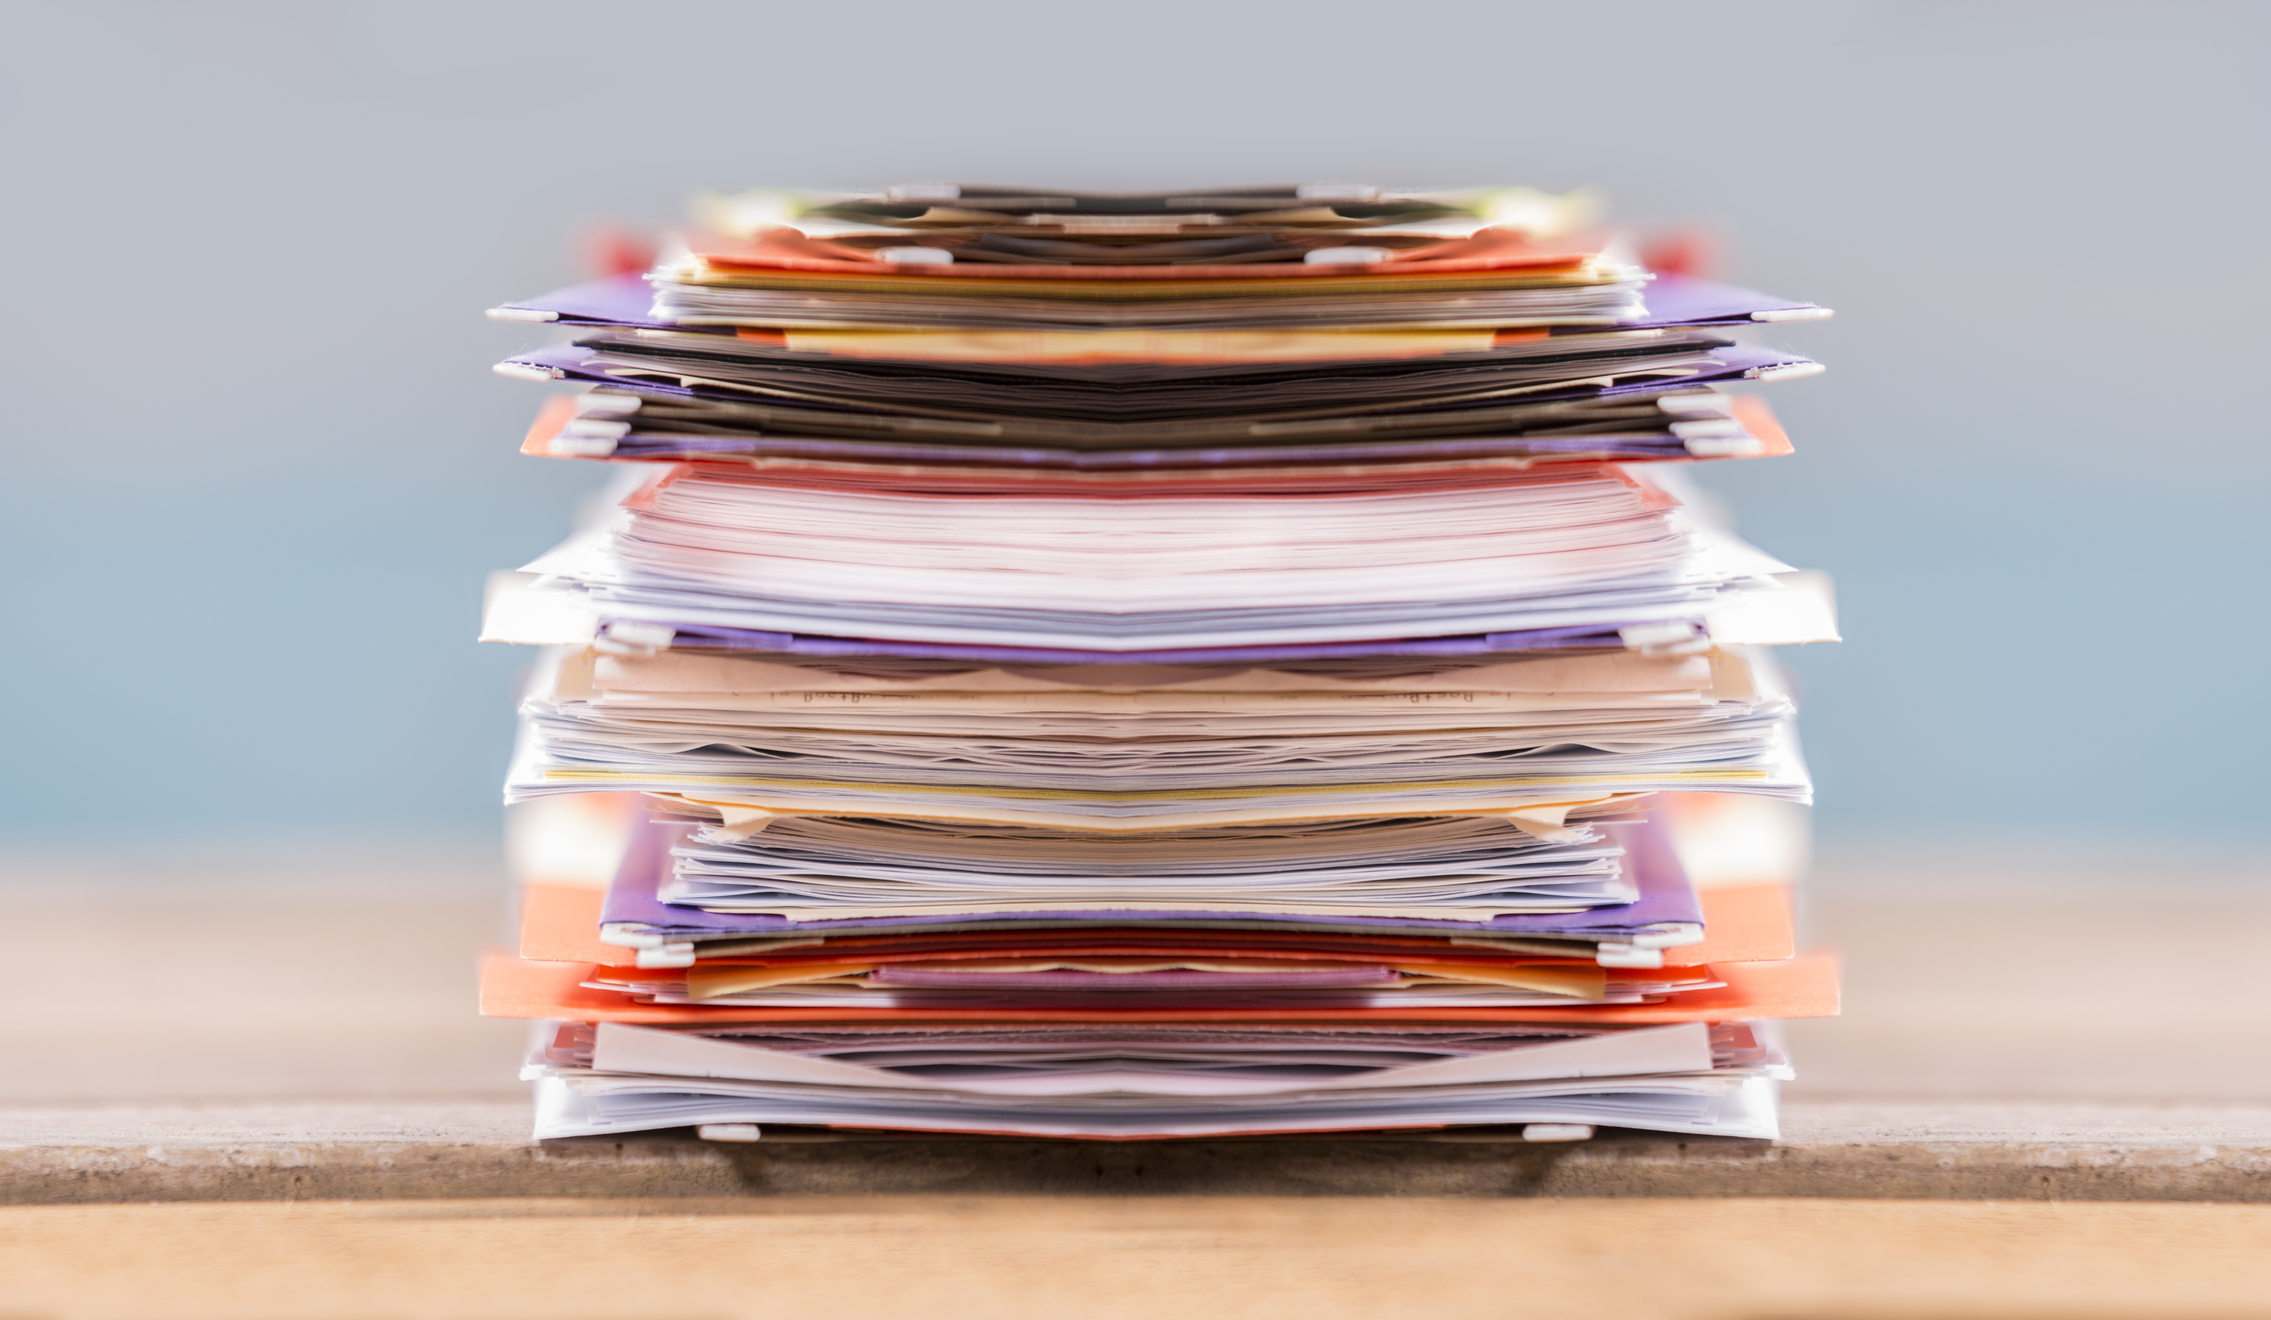 Large stack of multi-colored files and paperwork on an office desk. Blue window background. Business themes. No people.